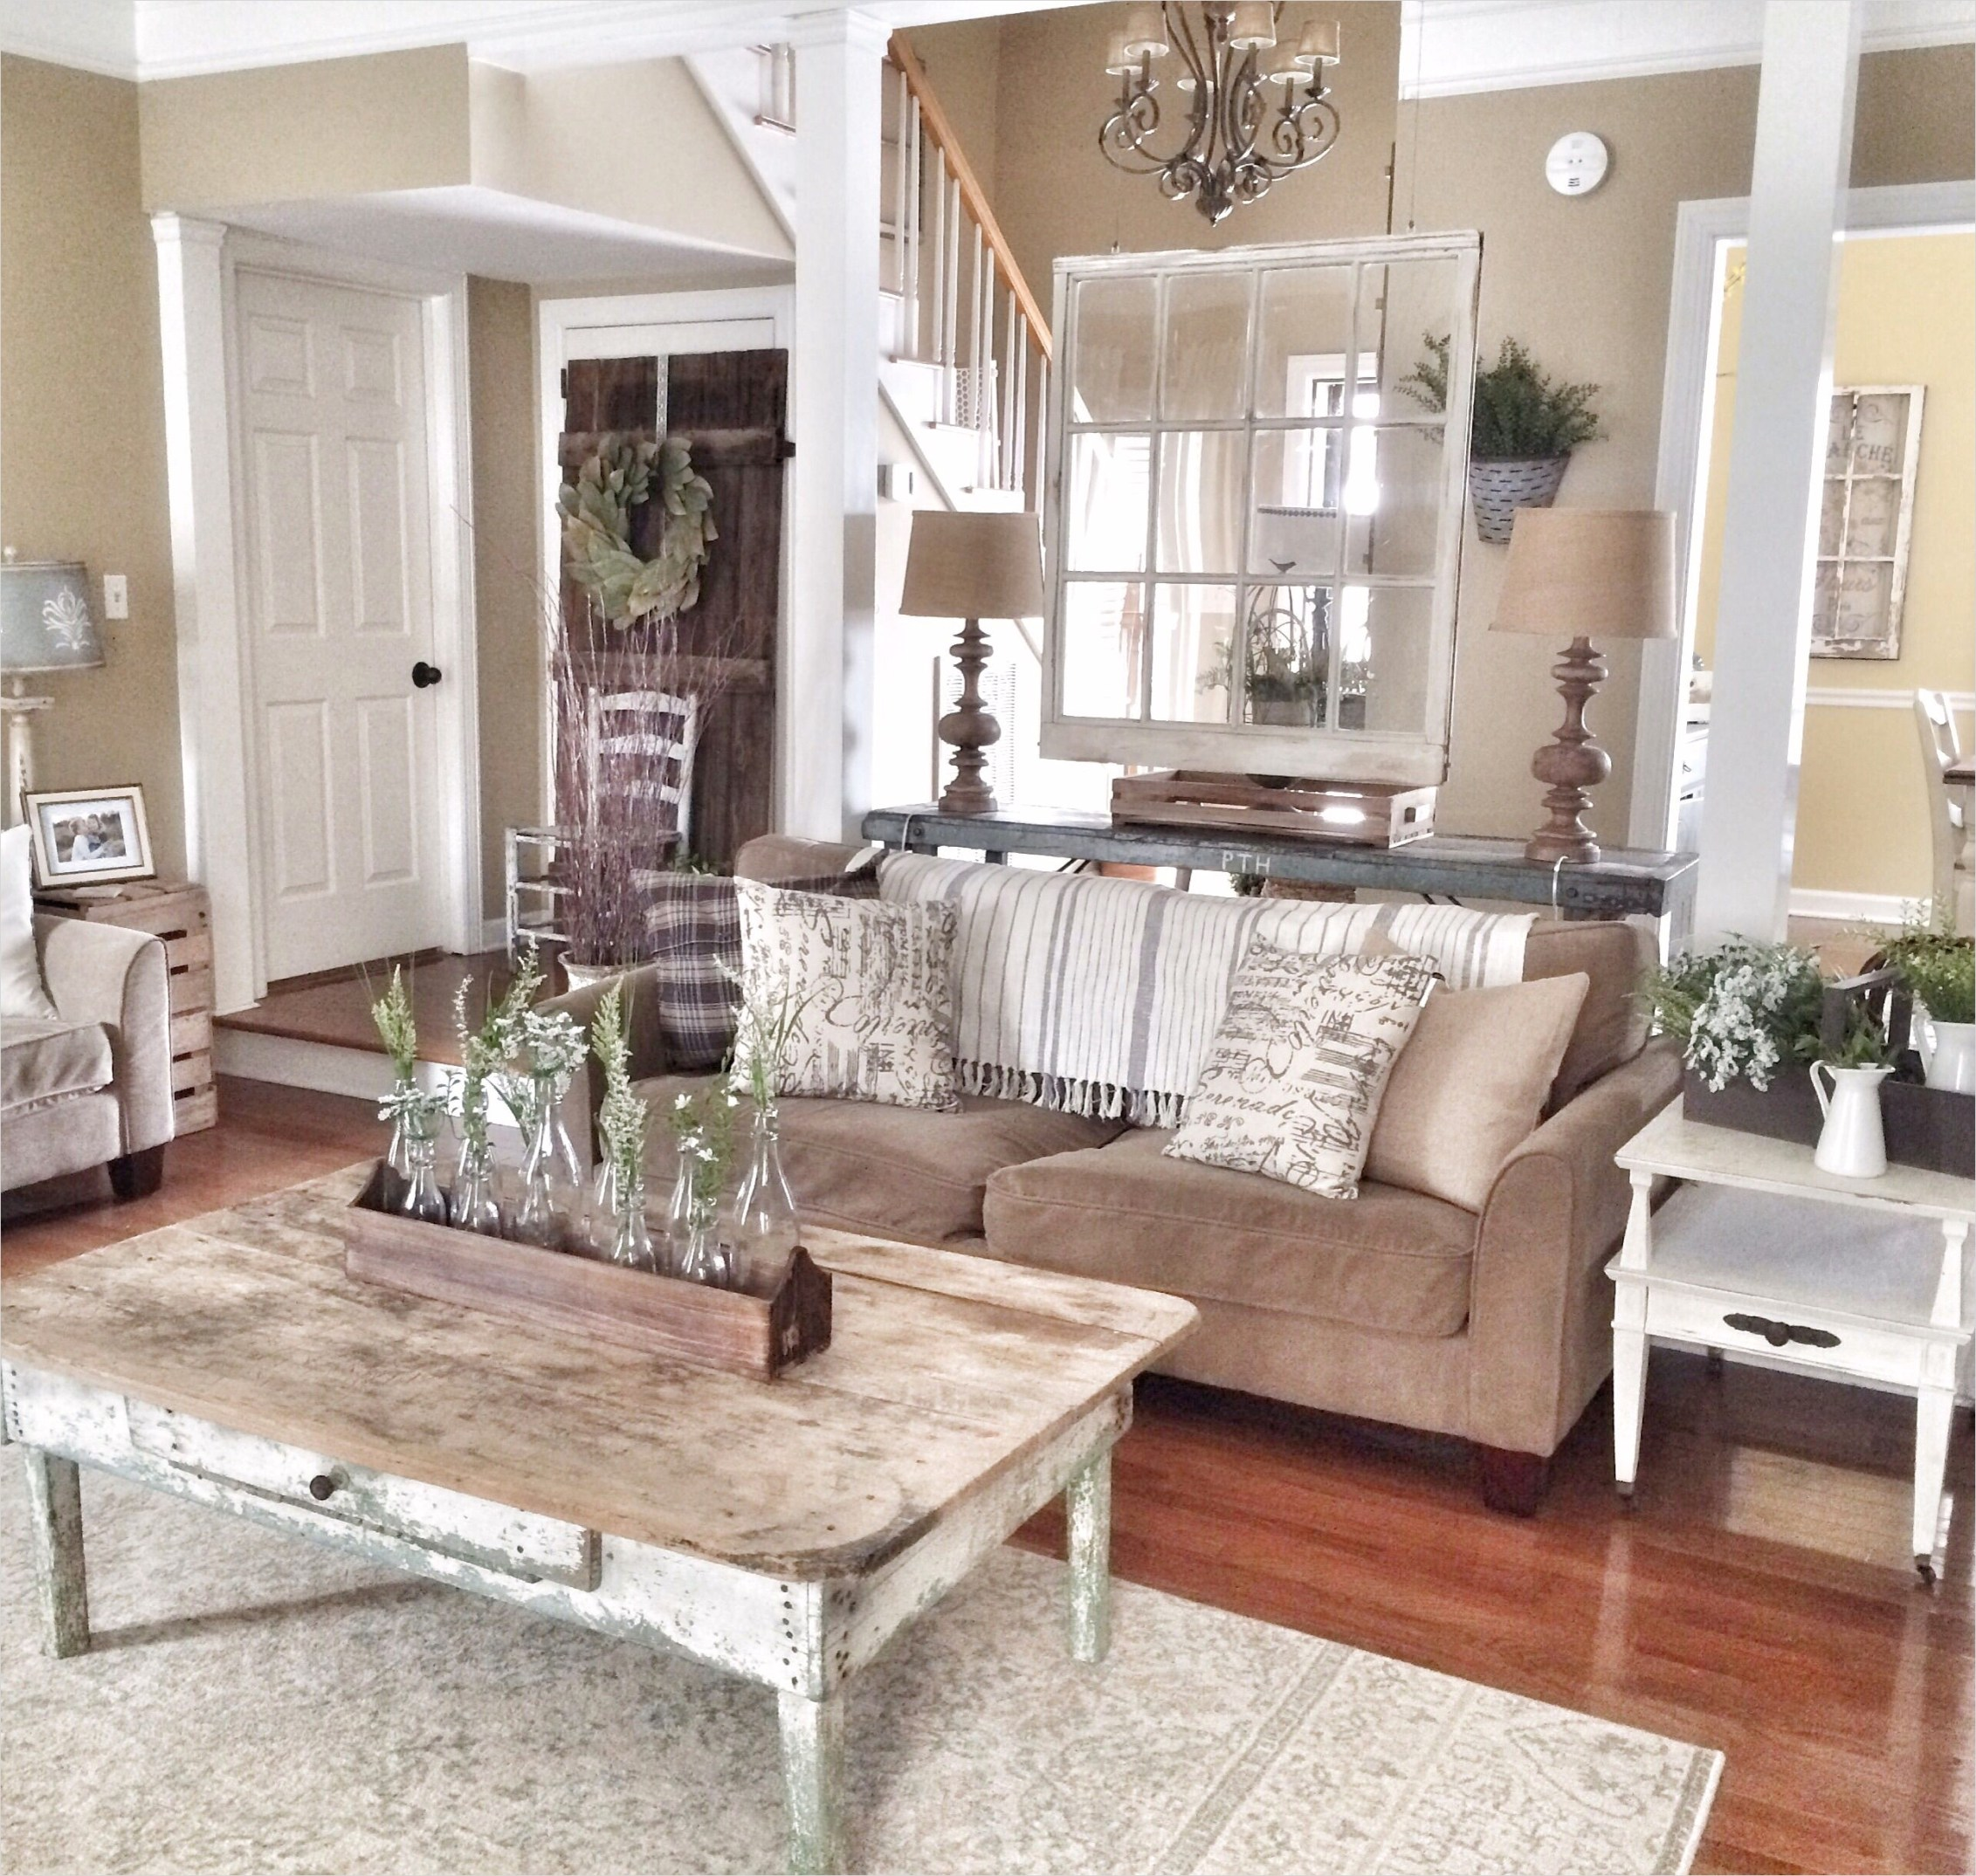 42 Cozy Country Farmhouse Living Room 78 Rustic and Farmhouse Livingroom My Future House 8